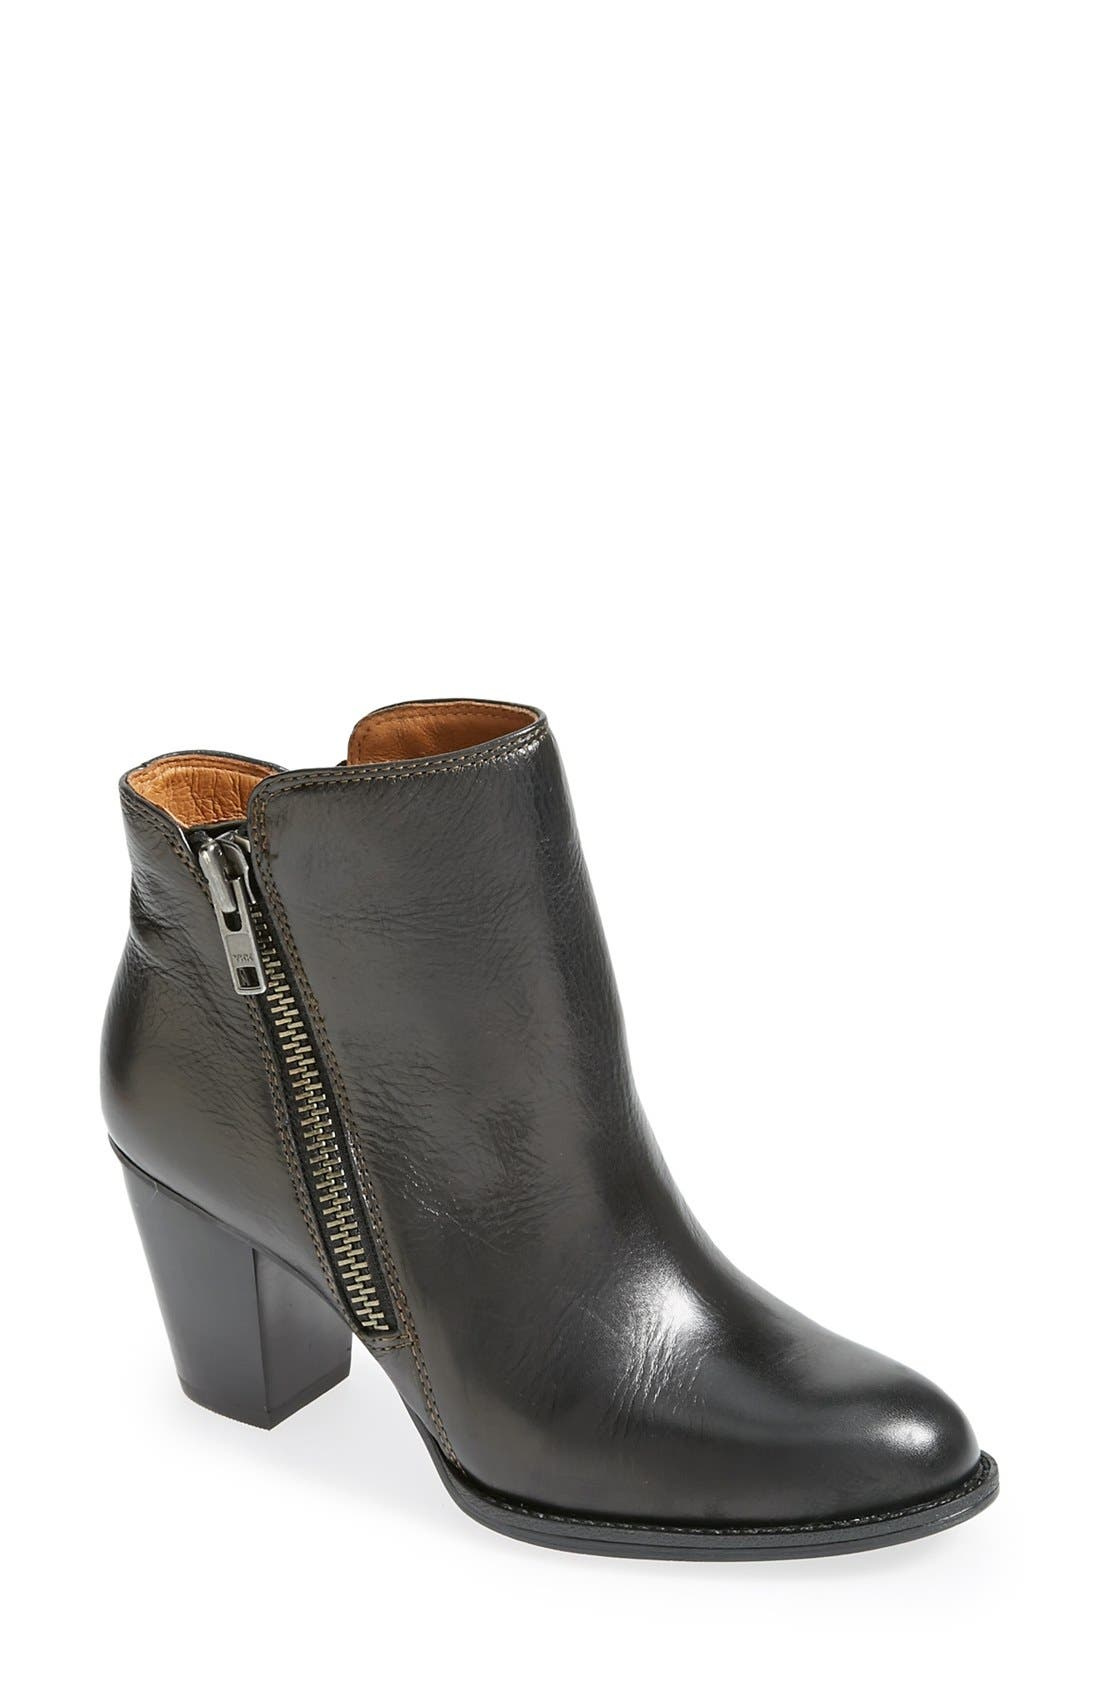 Alternate Image 1 Selected - Söfft 'Wera' Leather Bootie (Women)